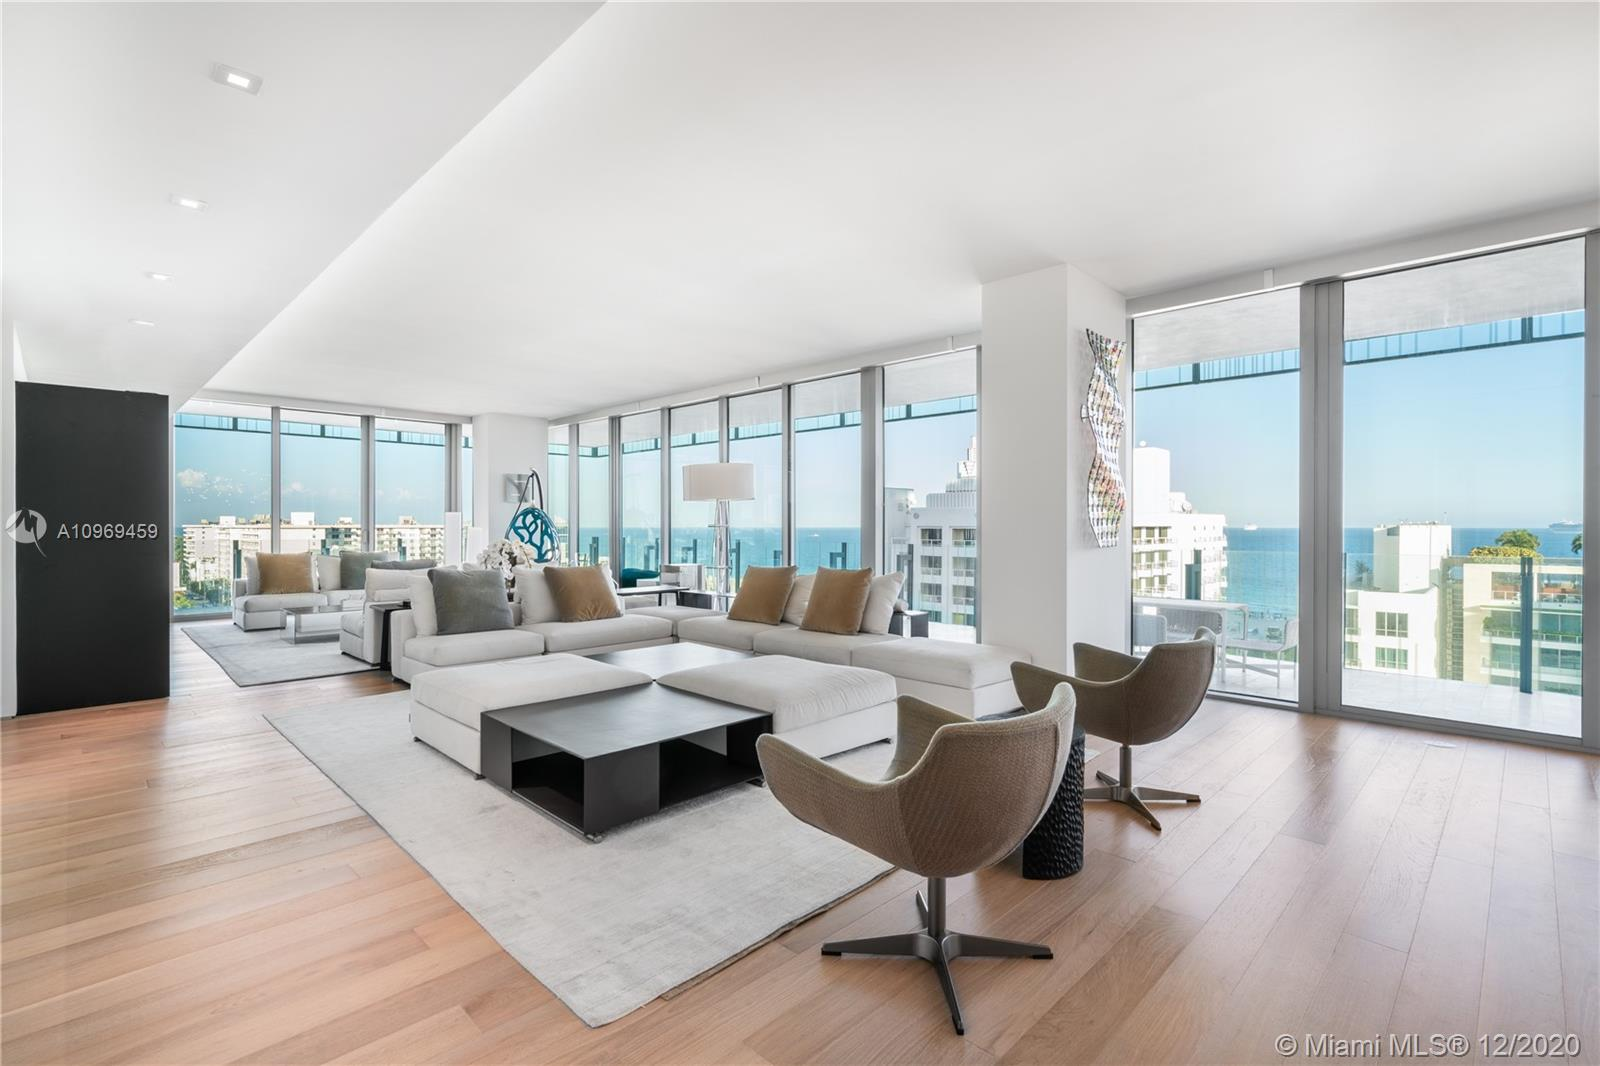 120 Ocean Dr, Unit #1000 Luxury Real Estate